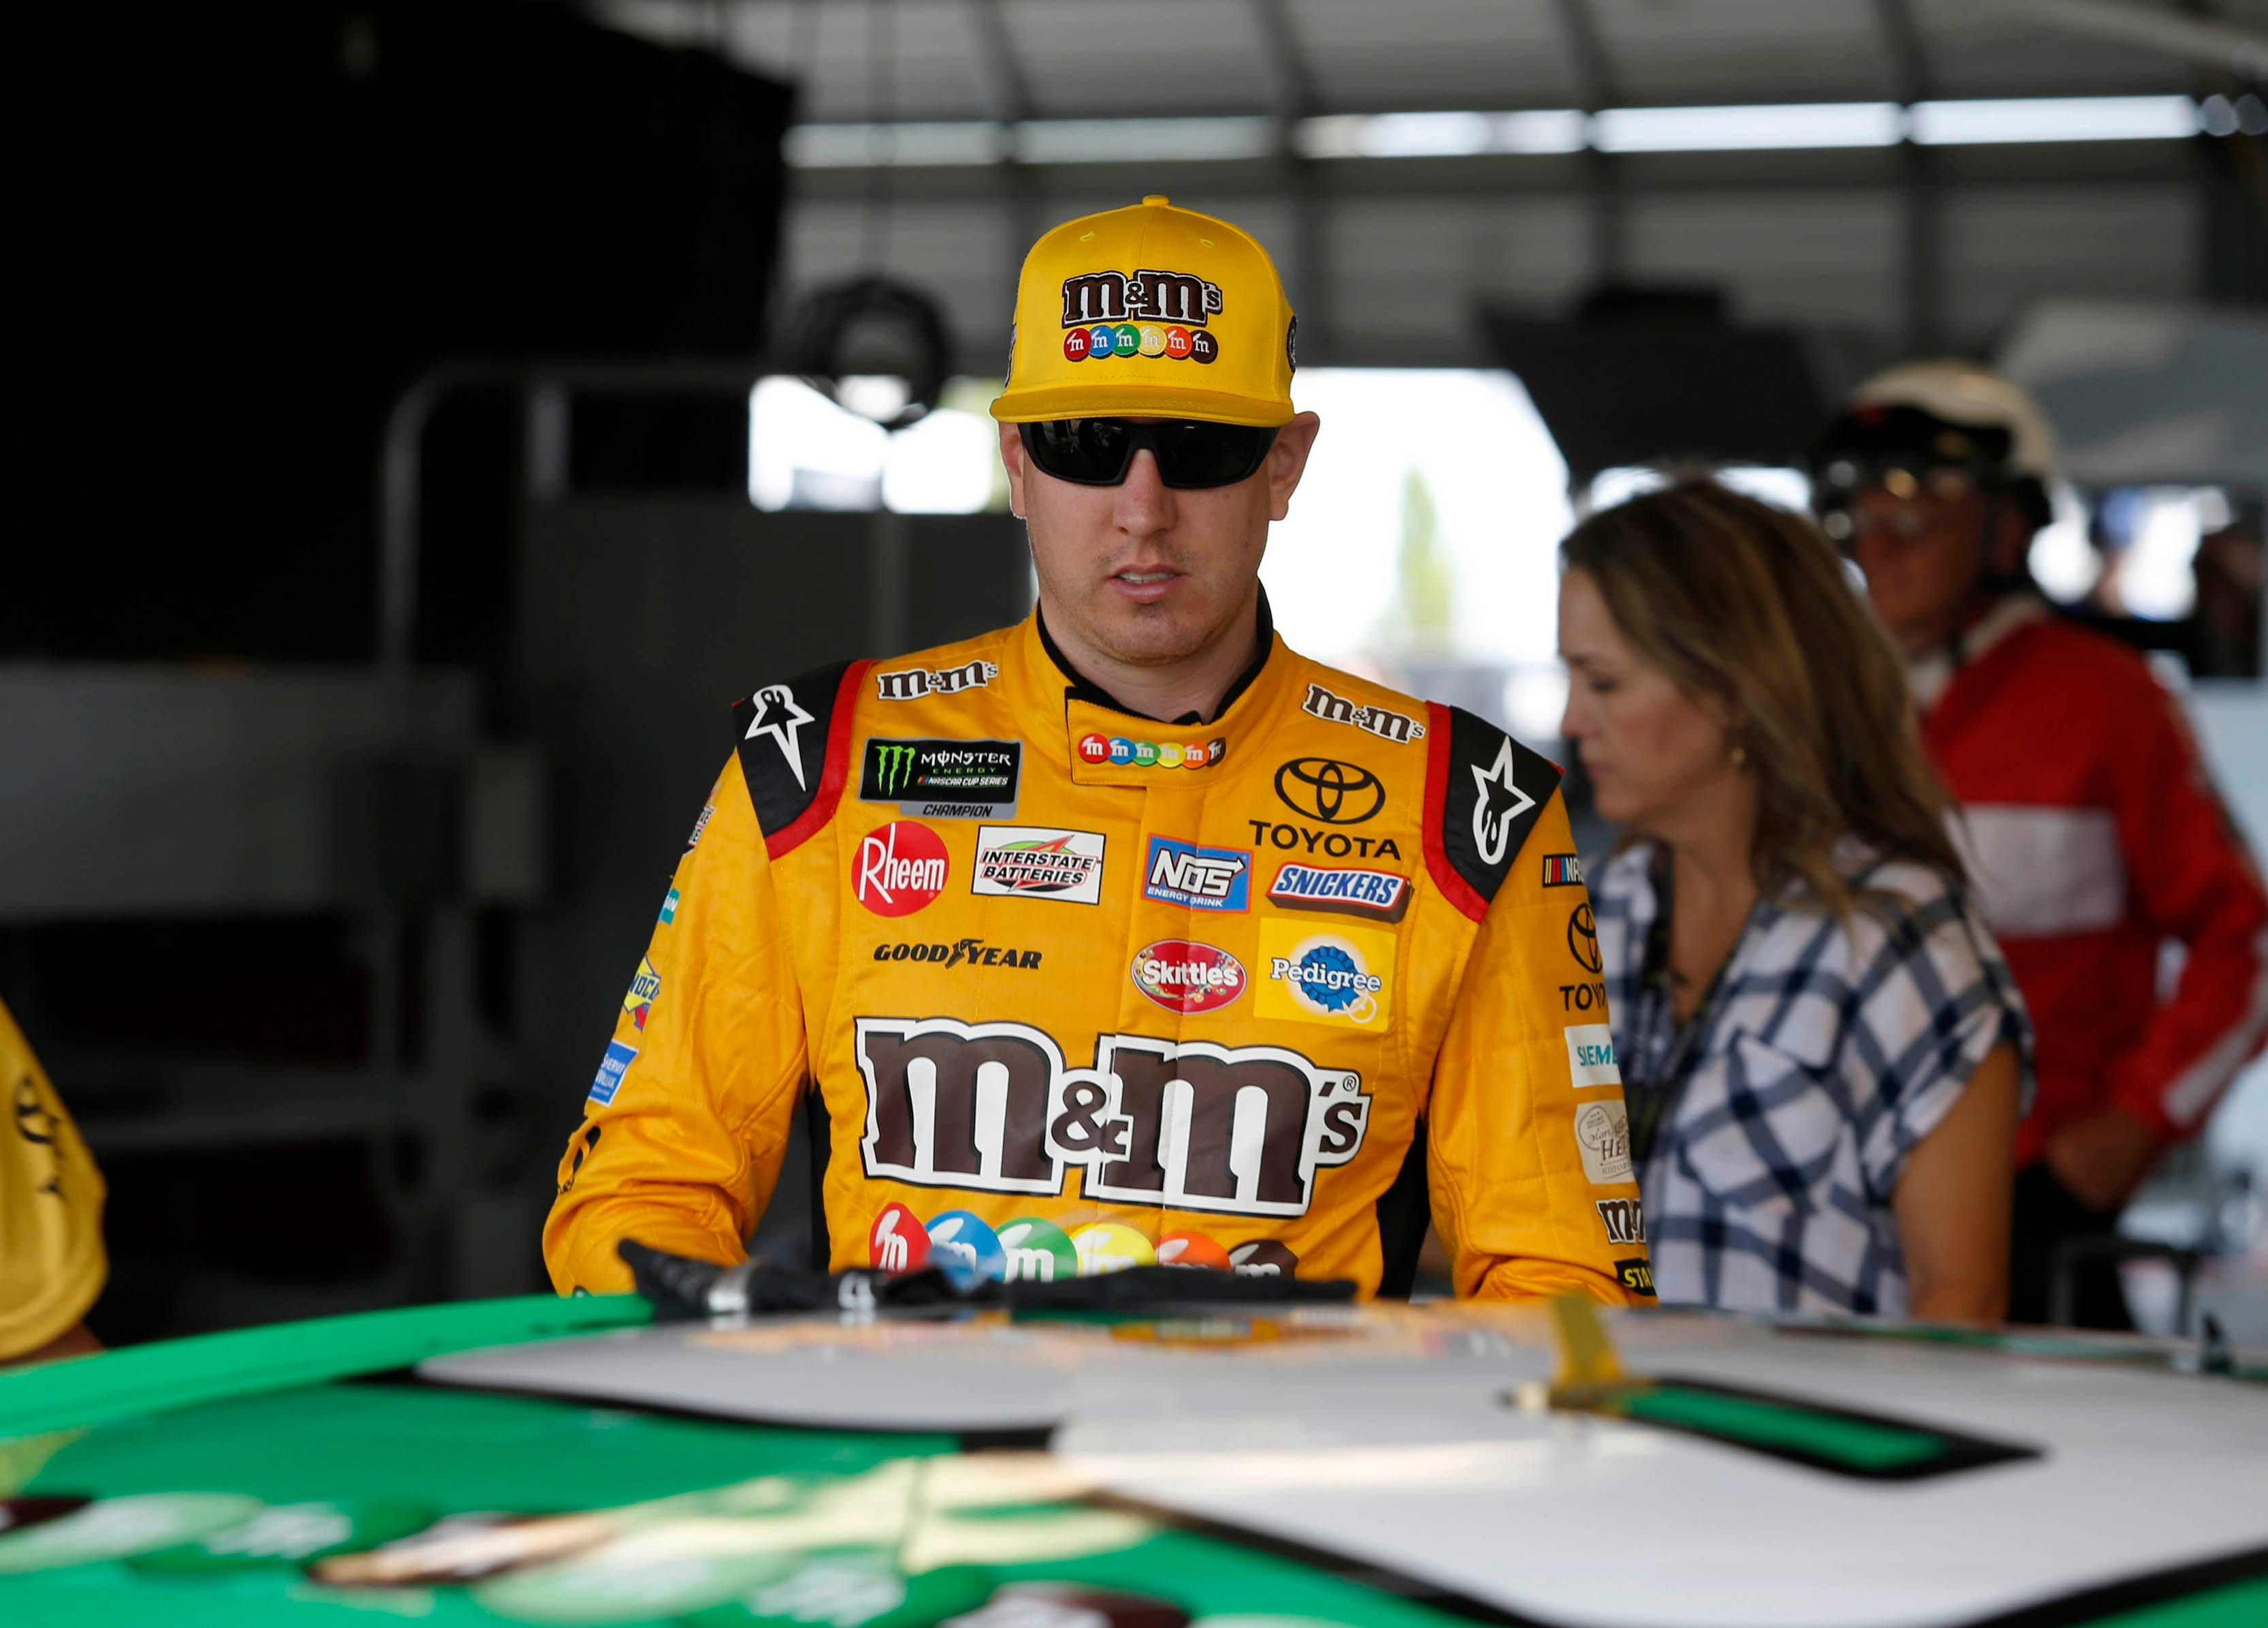 Kyle Busch confronts heckling fan in heated post-race incident